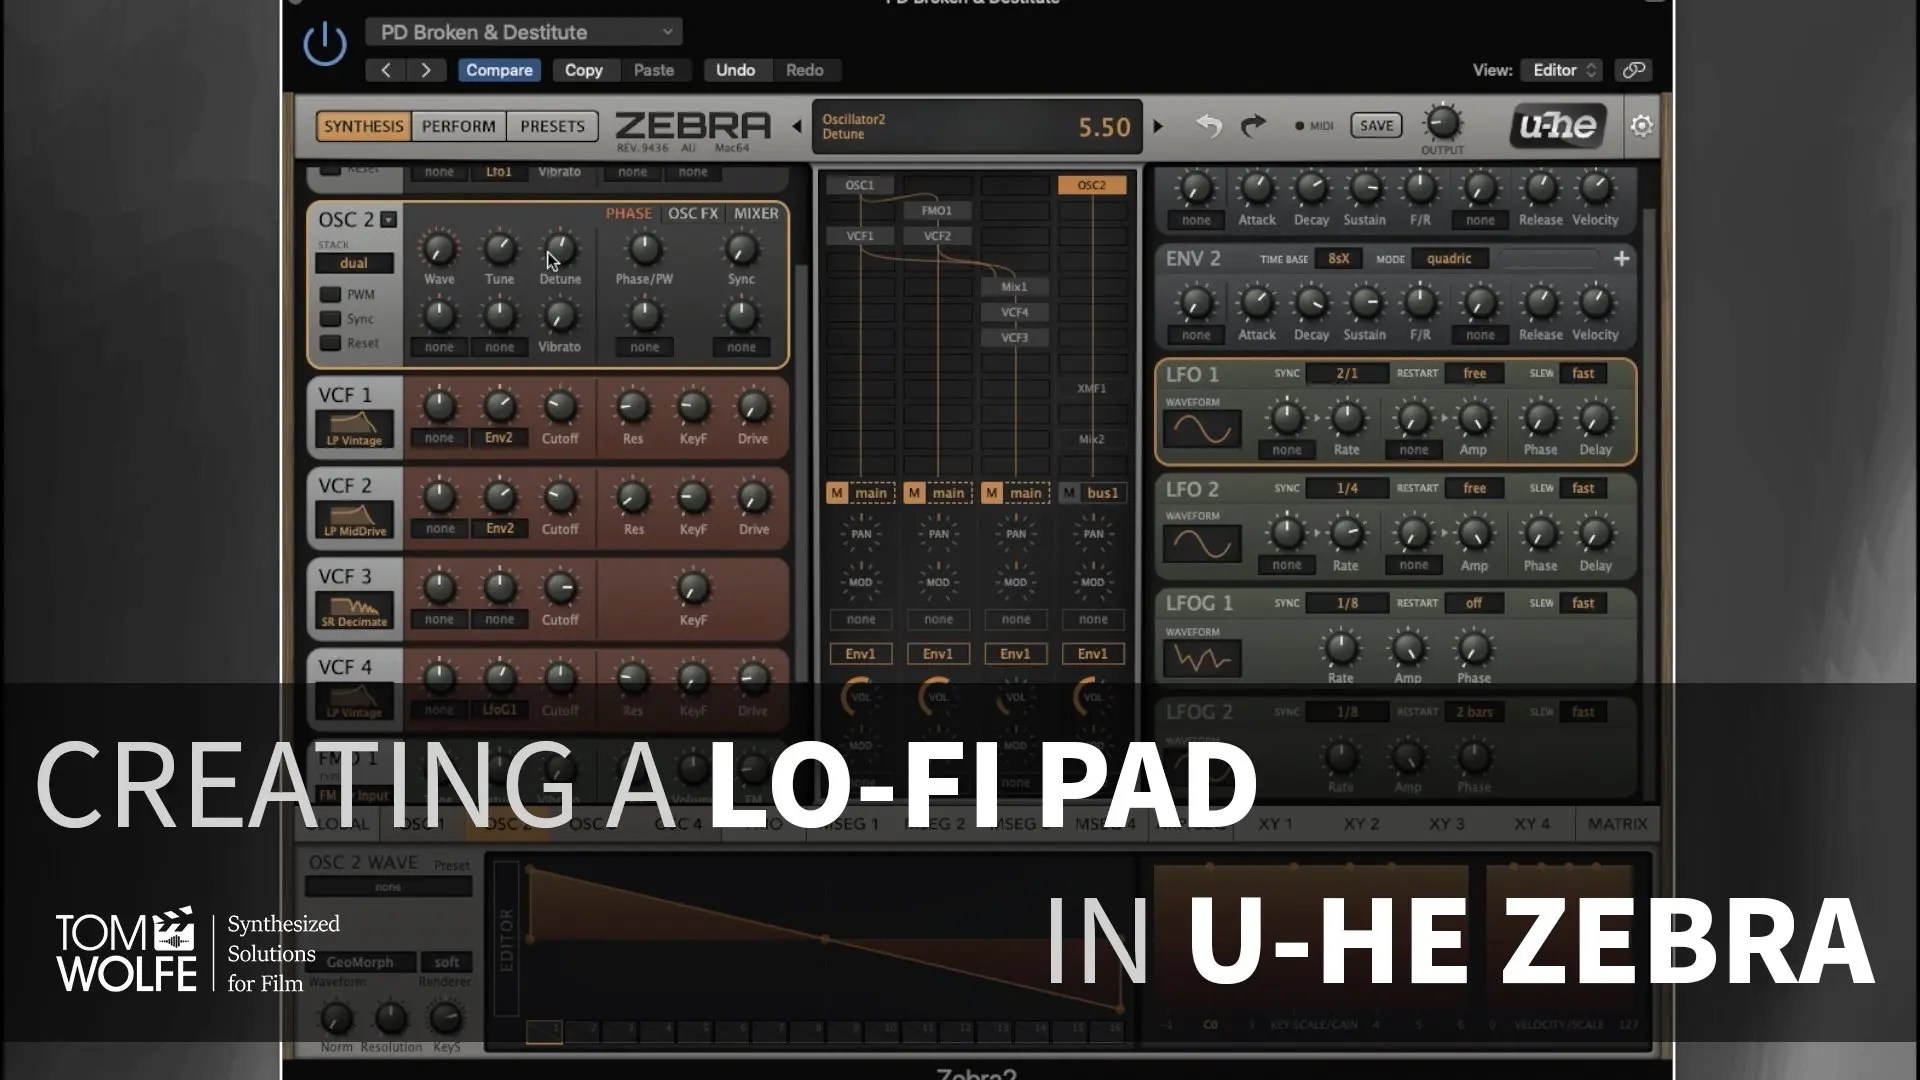 Creating A Patch In U-he Zebra - Lo-Fi Pad